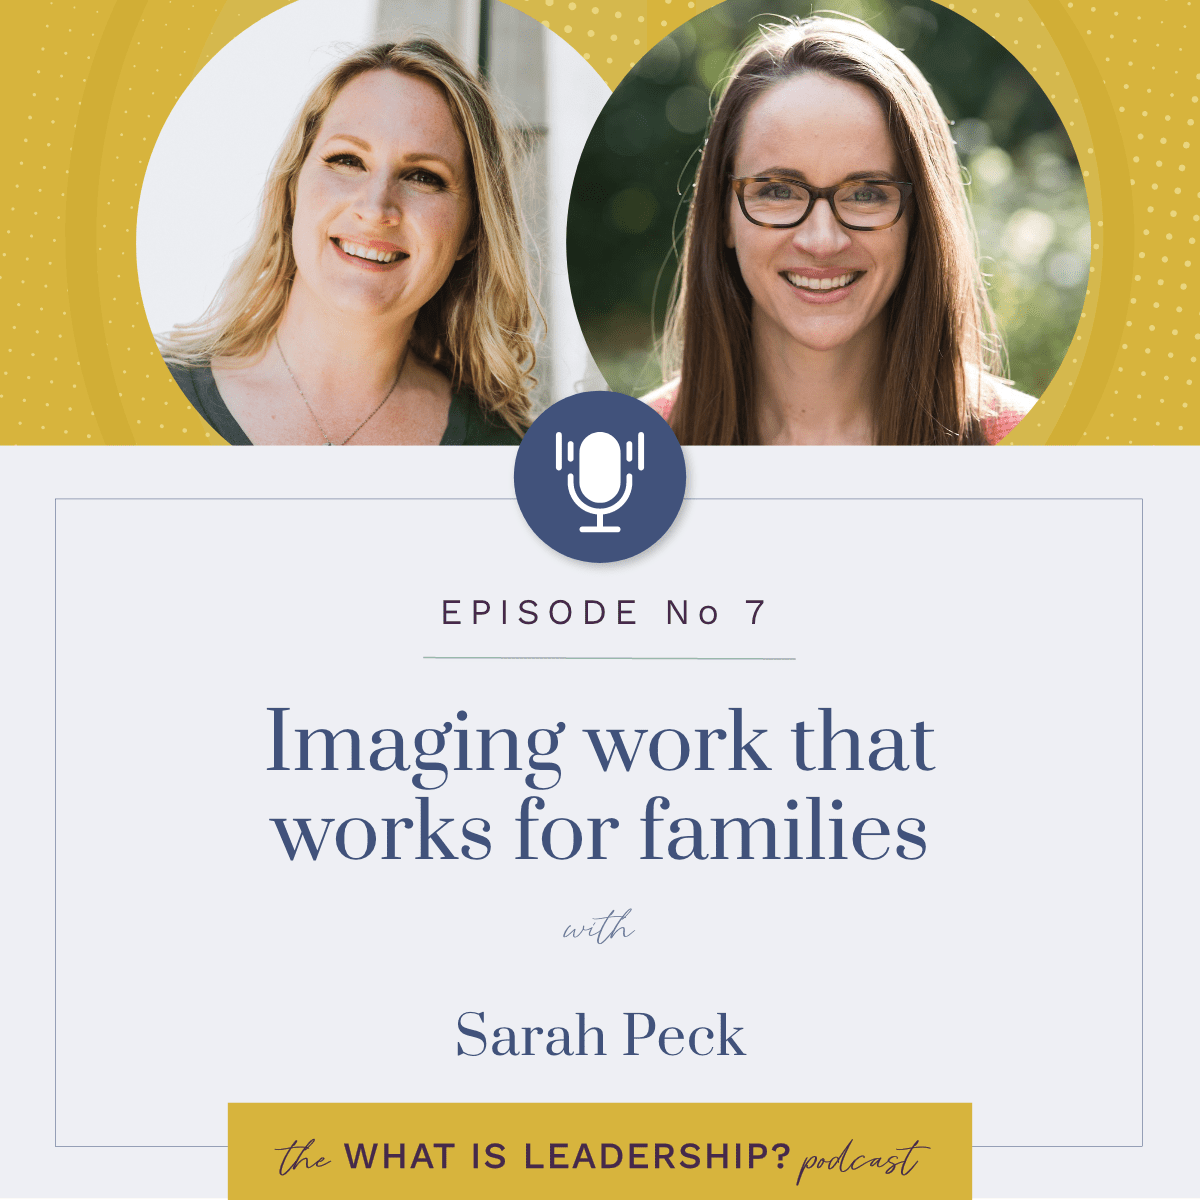 07 – Imagining work that works for families with Sarah Peck